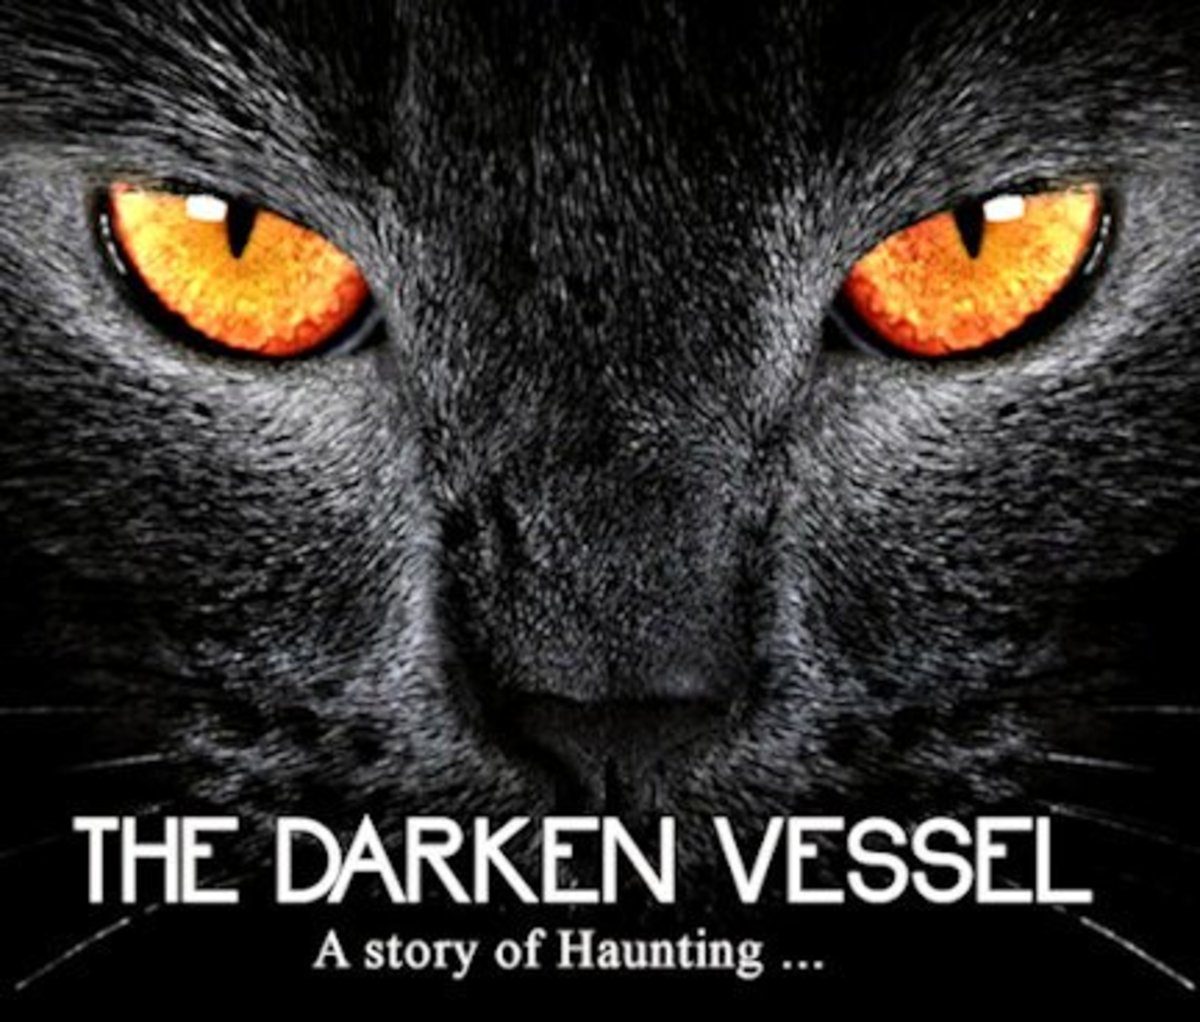 The Darken Vessel 2